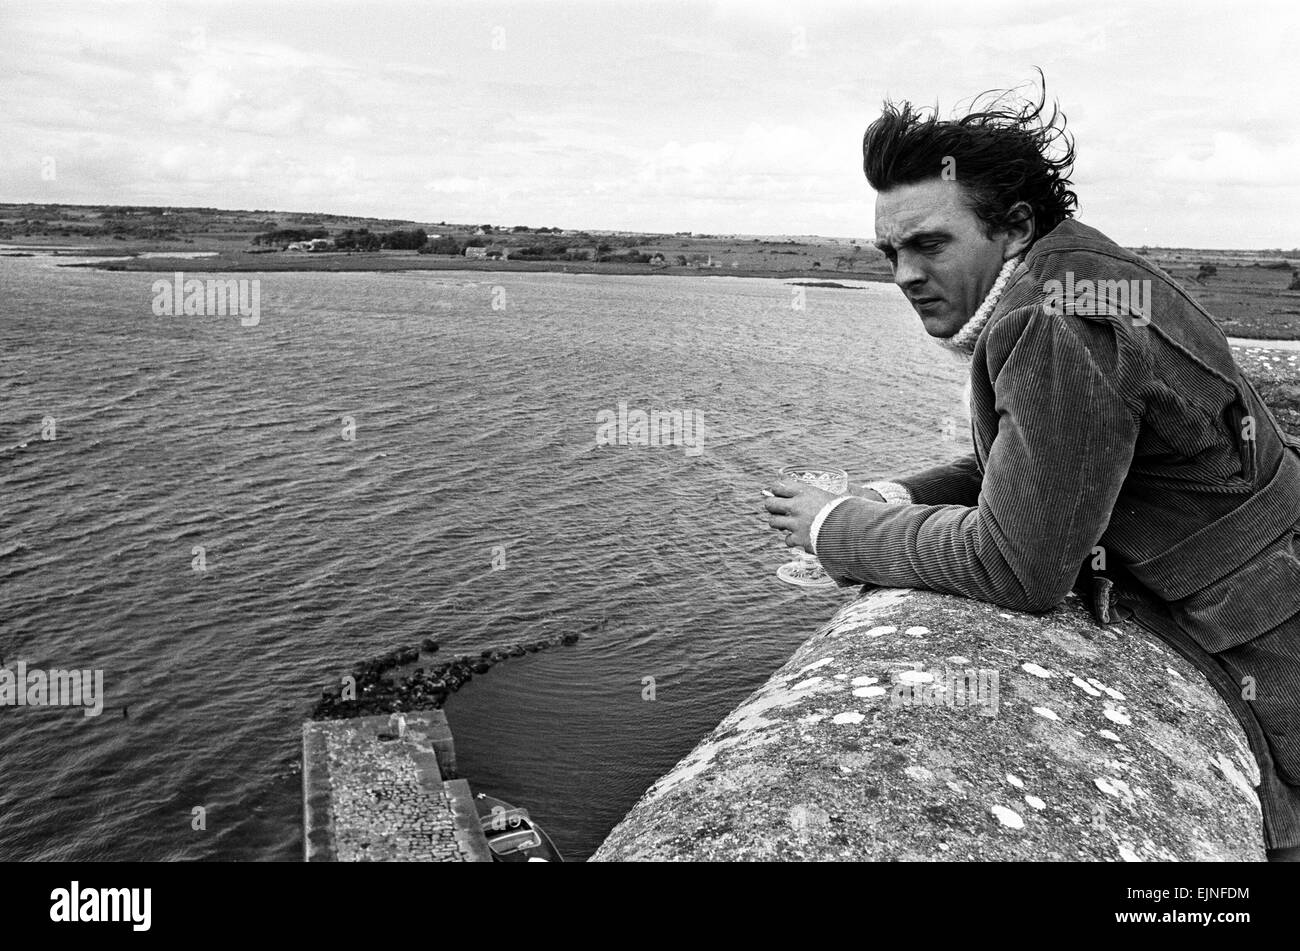 British Actor David Hemmings, pictured at Oranmore Castle, which is approximately 10km from Galway City, 21st June - Stock Image